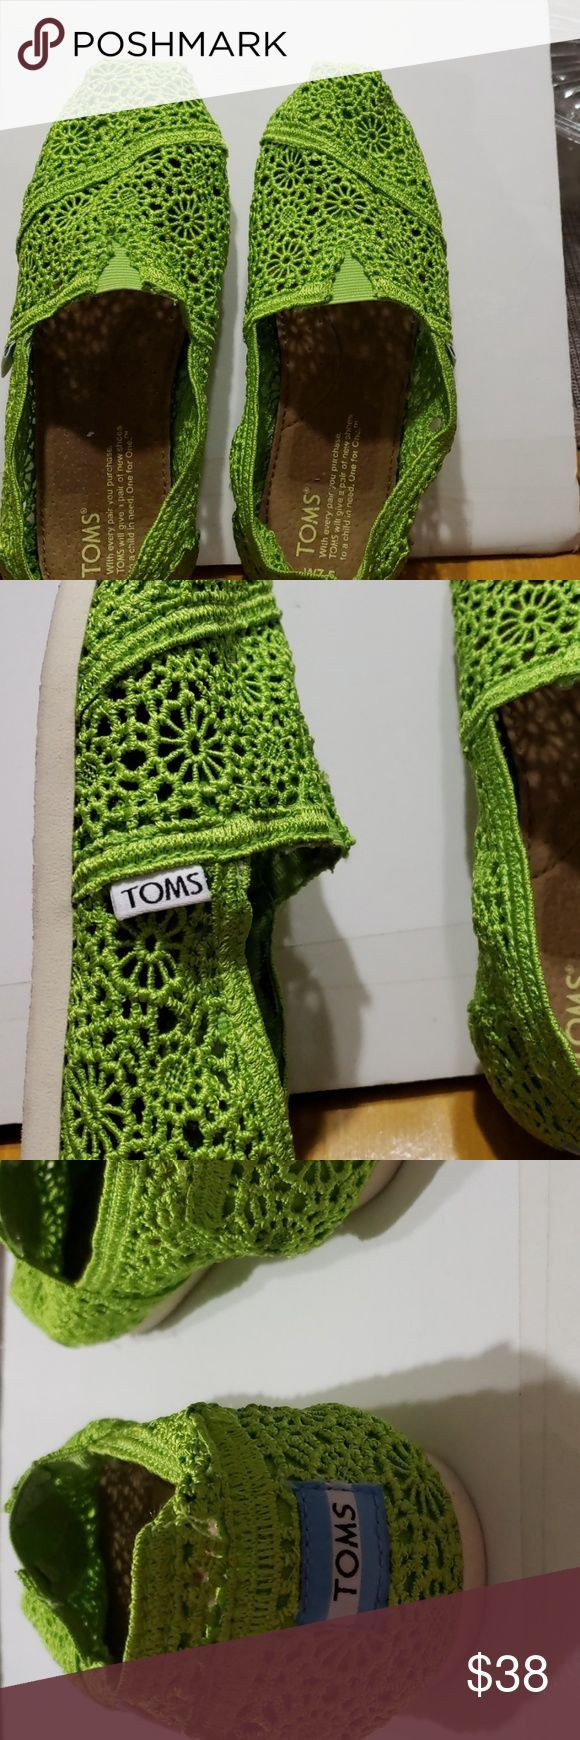 Tom39s shoes They are crocheted green Toms Shoes Flats  Loafers Toms shoes They are crocheted green Toms Shoes Flats  Loafers